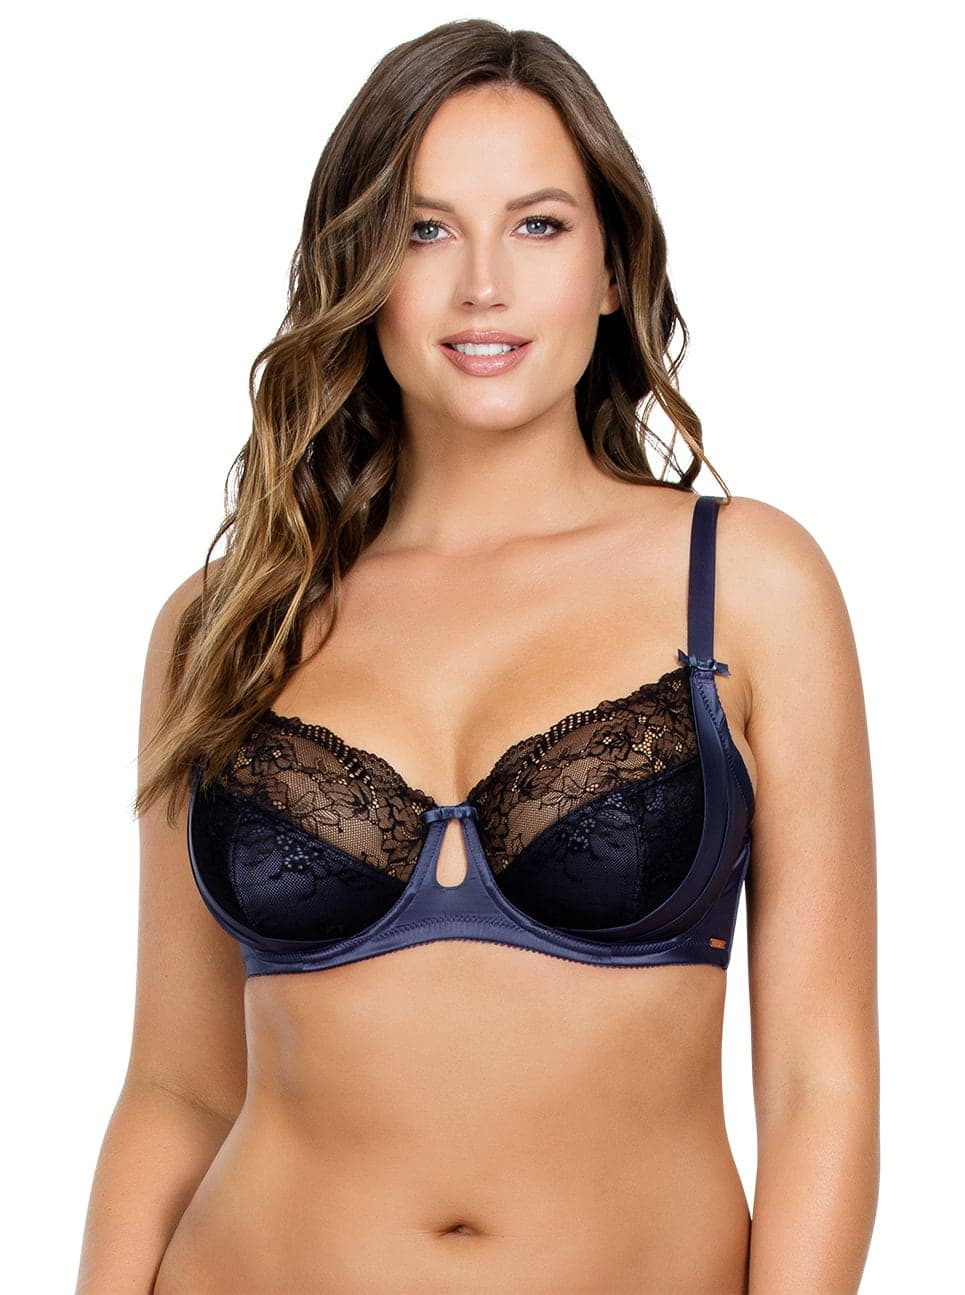 PARFAIT Mariela UnlinedWireBraP5582 Nightshadow Front - Mariela Unlined Wire Bra - Nightshadow - P5582